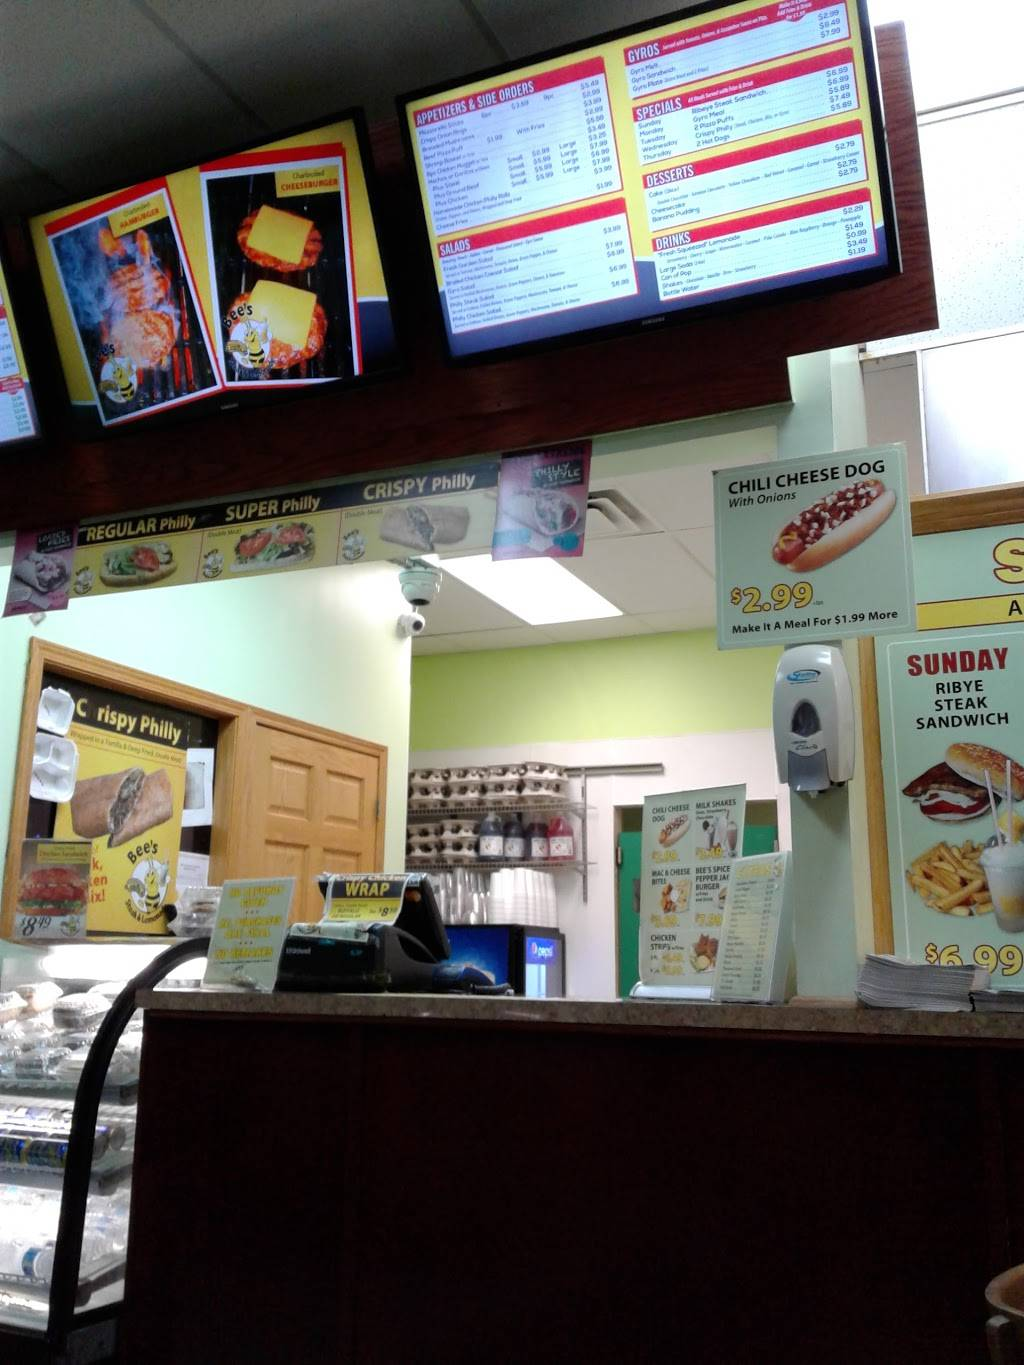 Subway Restaurants | restaurant | 4249 167th St, Country Club Hills, IL 60478, USA | 7087996040 OR +1 708-799-6040